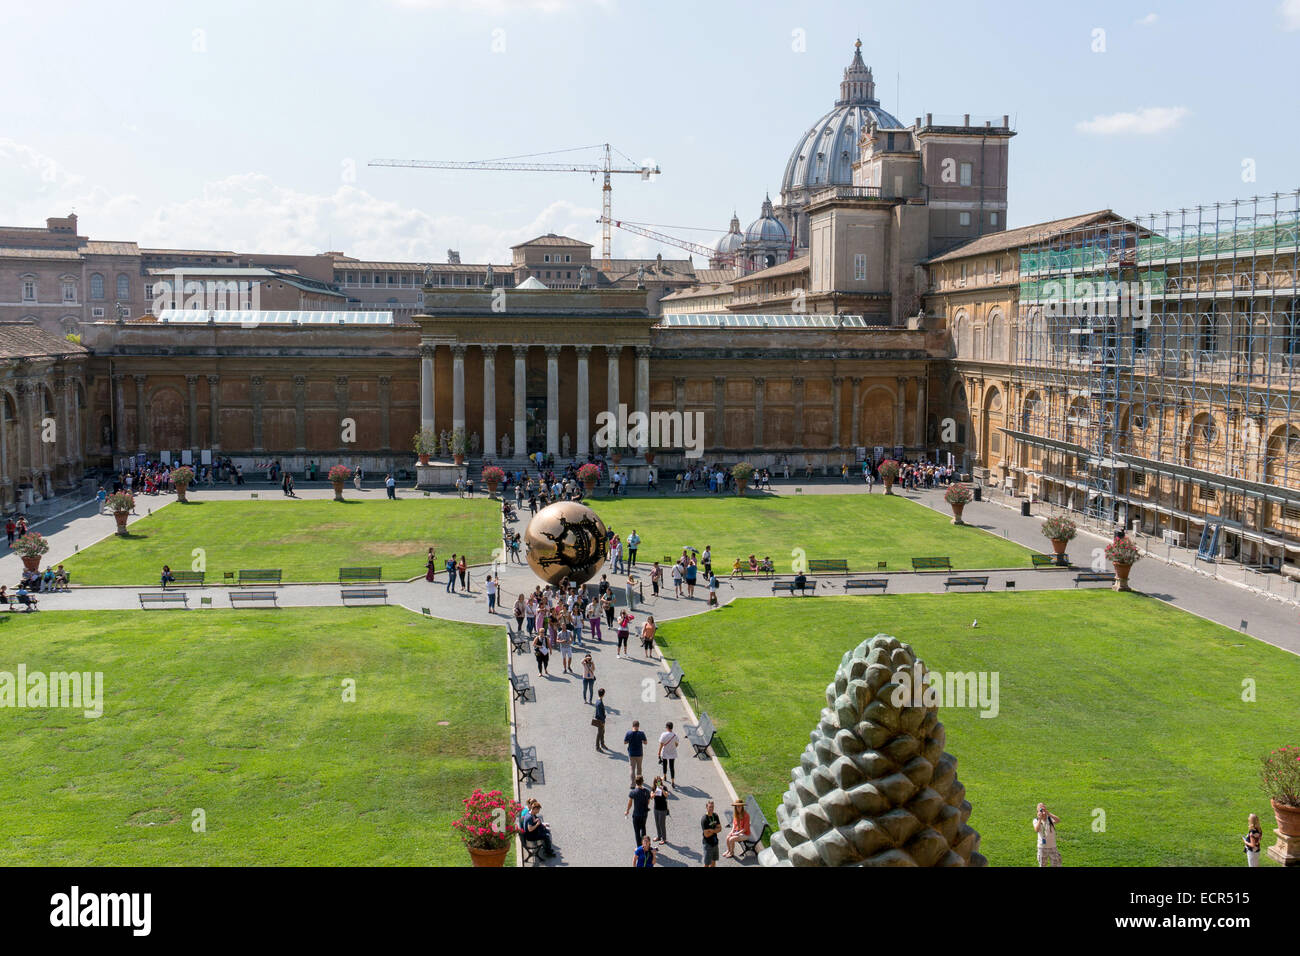 """Vatican City: Courtyard of the Vatican Museums with Arnaldo Pomodoro's sculpture """"Sfera con sfera"""". Photo from 4th Stock Photo"""